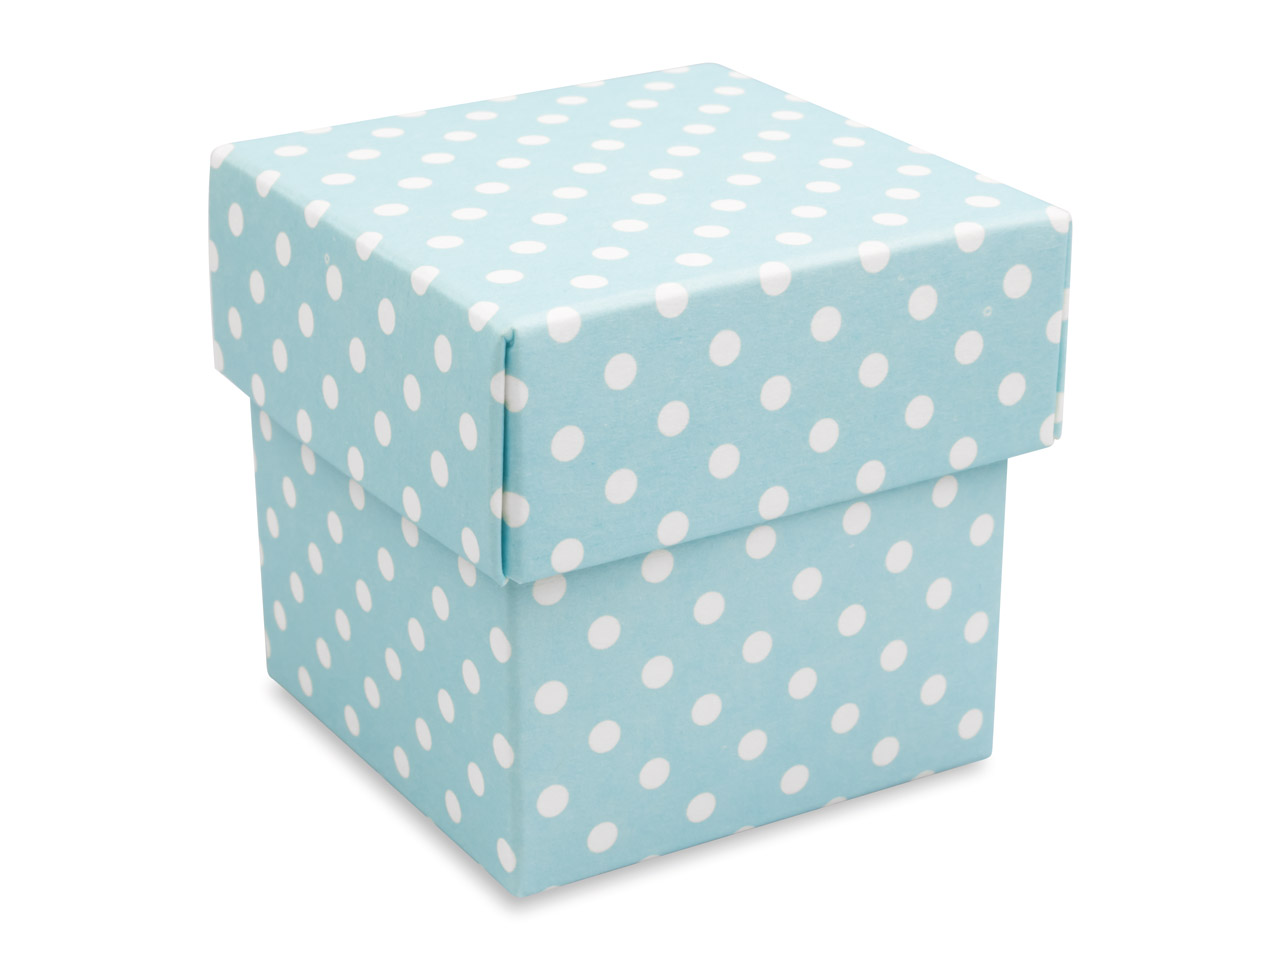 Flat Pack Square Box Blue Polka Dot Pack of 10